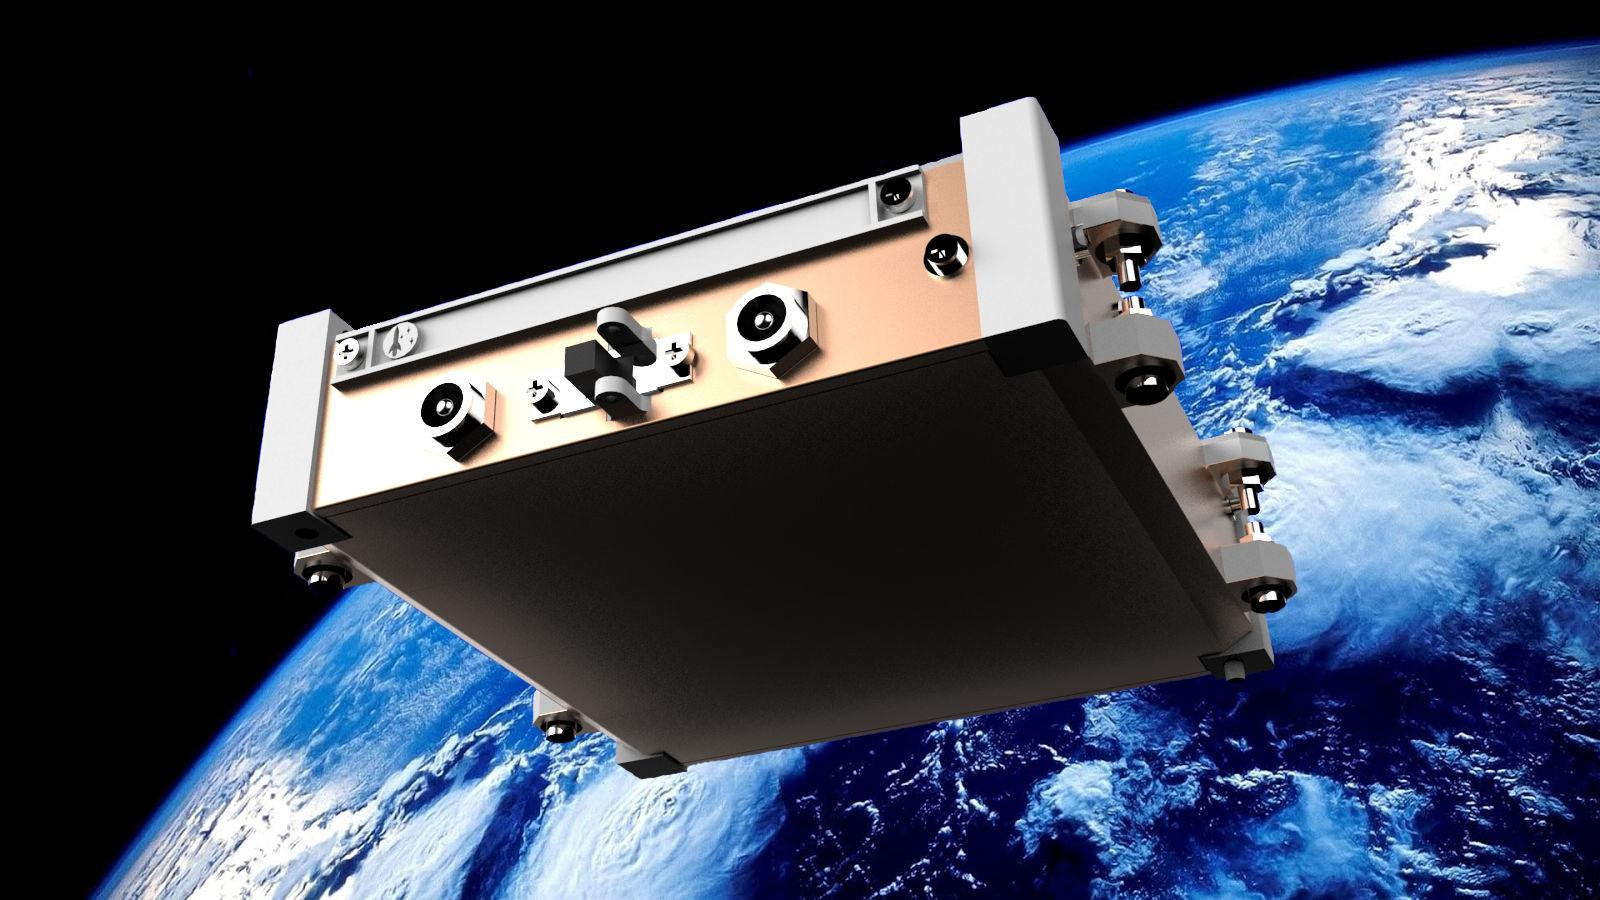 Q-Cube: A DIY Educational Satellite